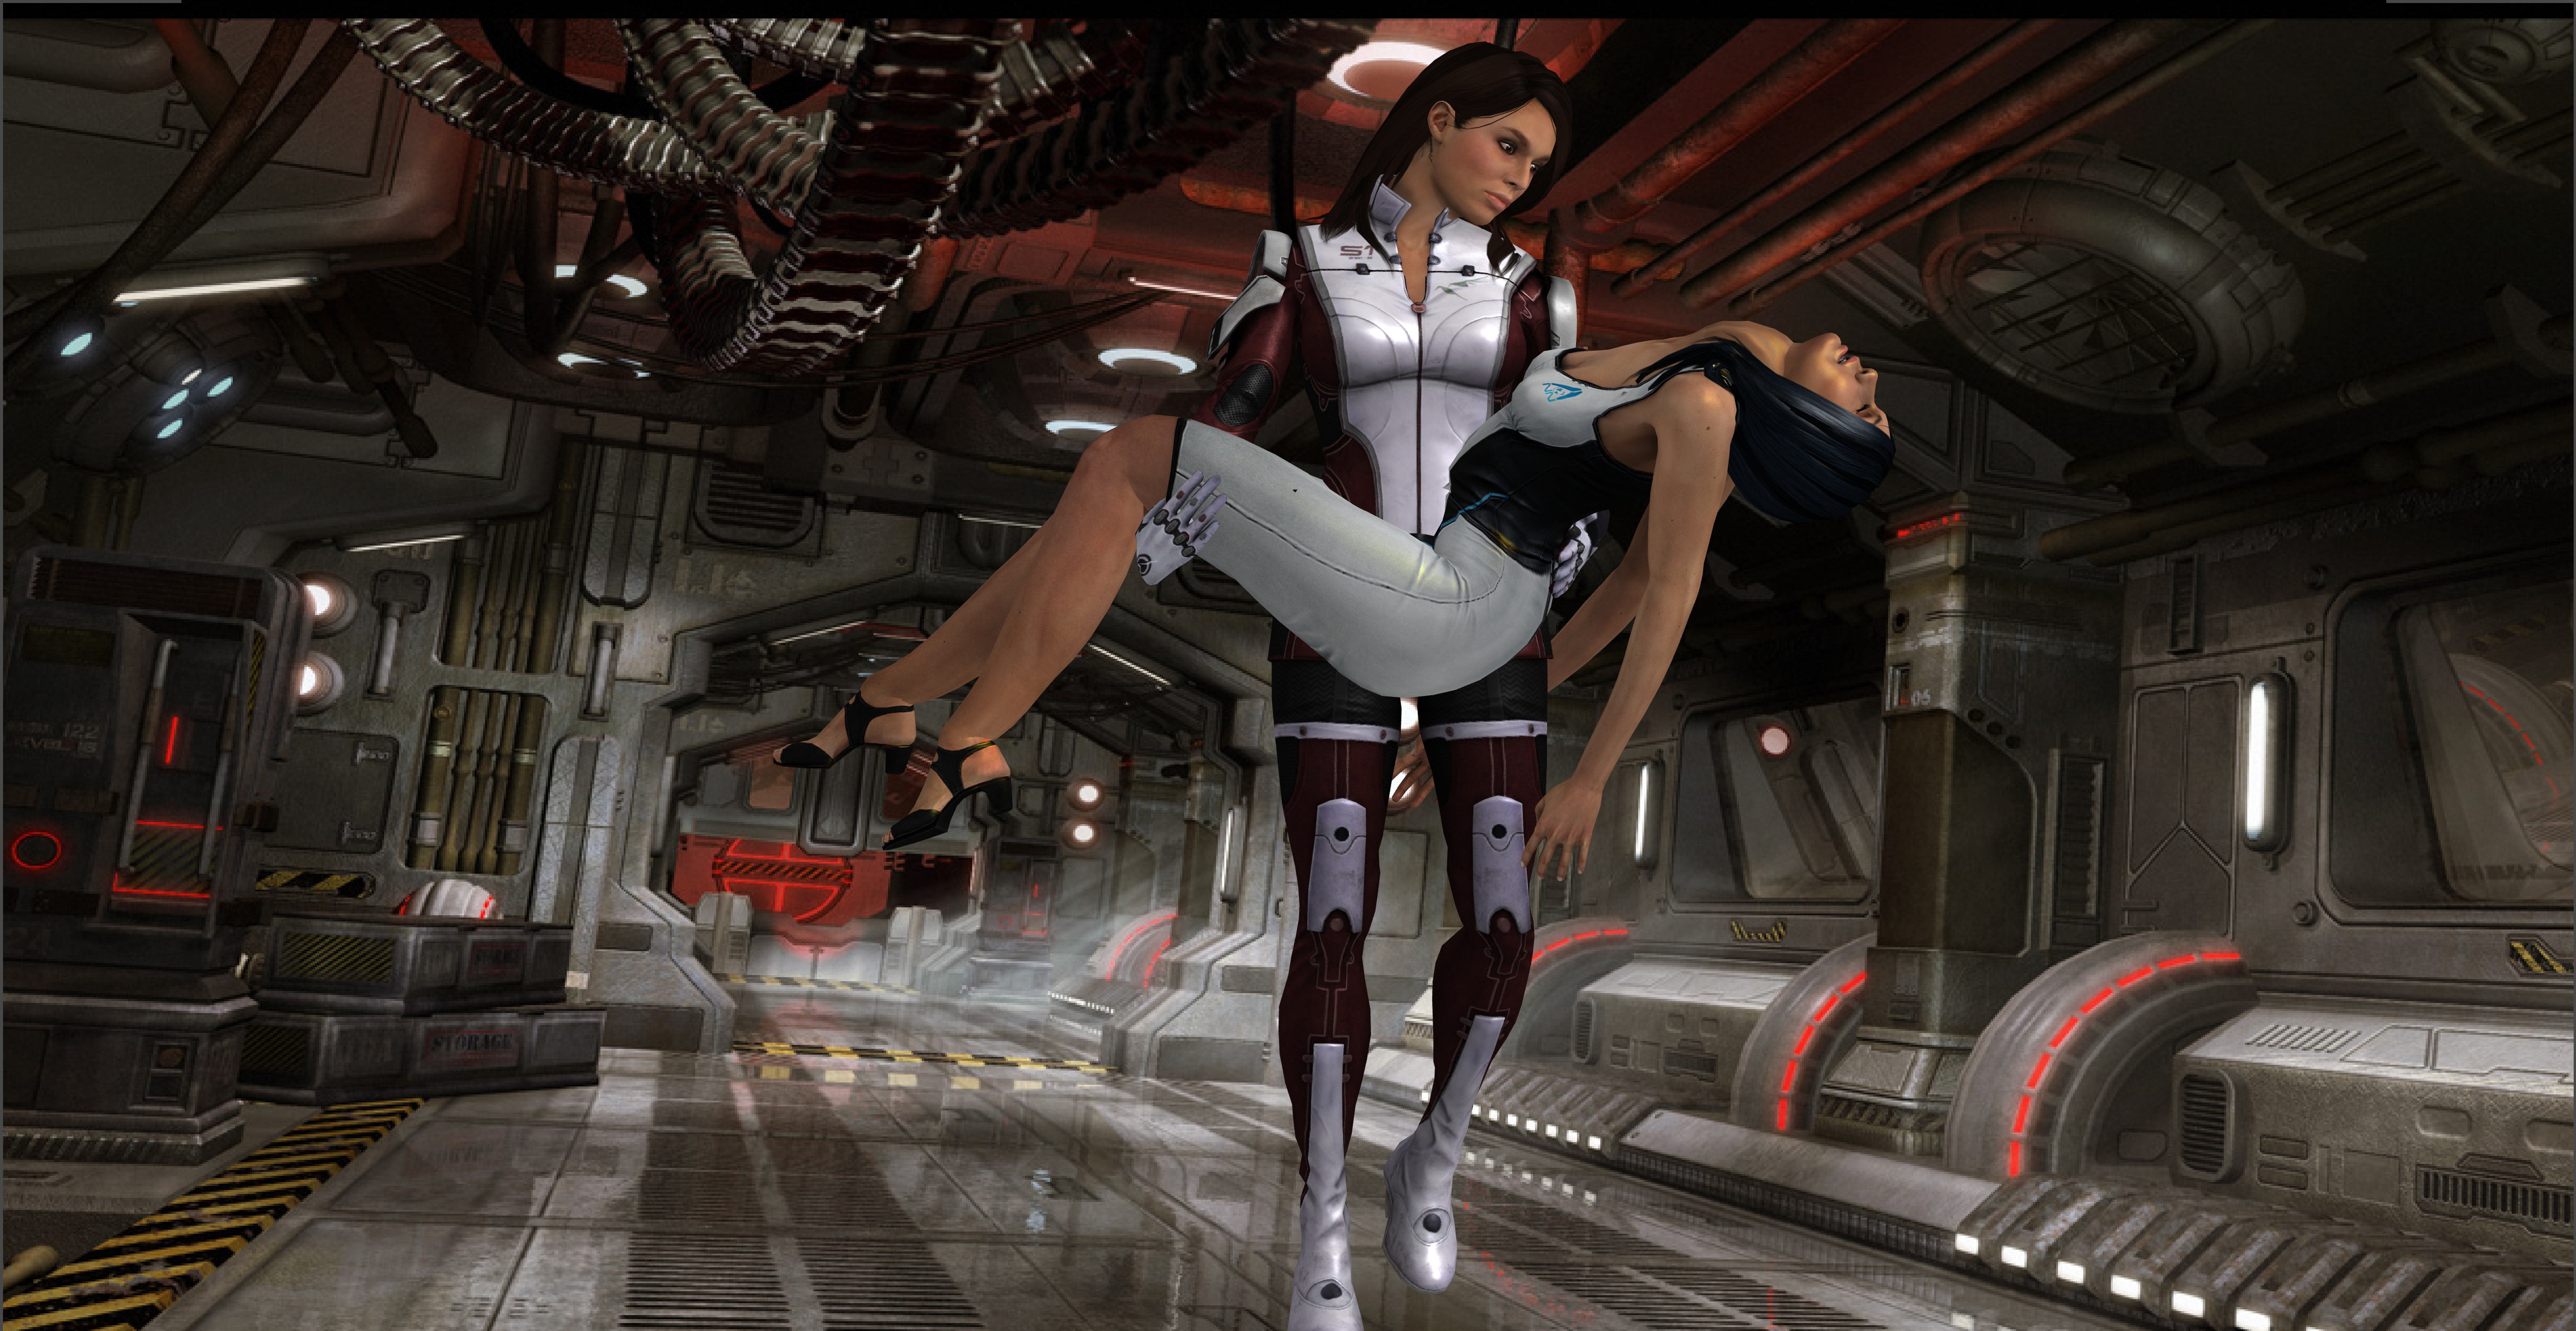 Free mass effect porn rule 34 sexy gallery